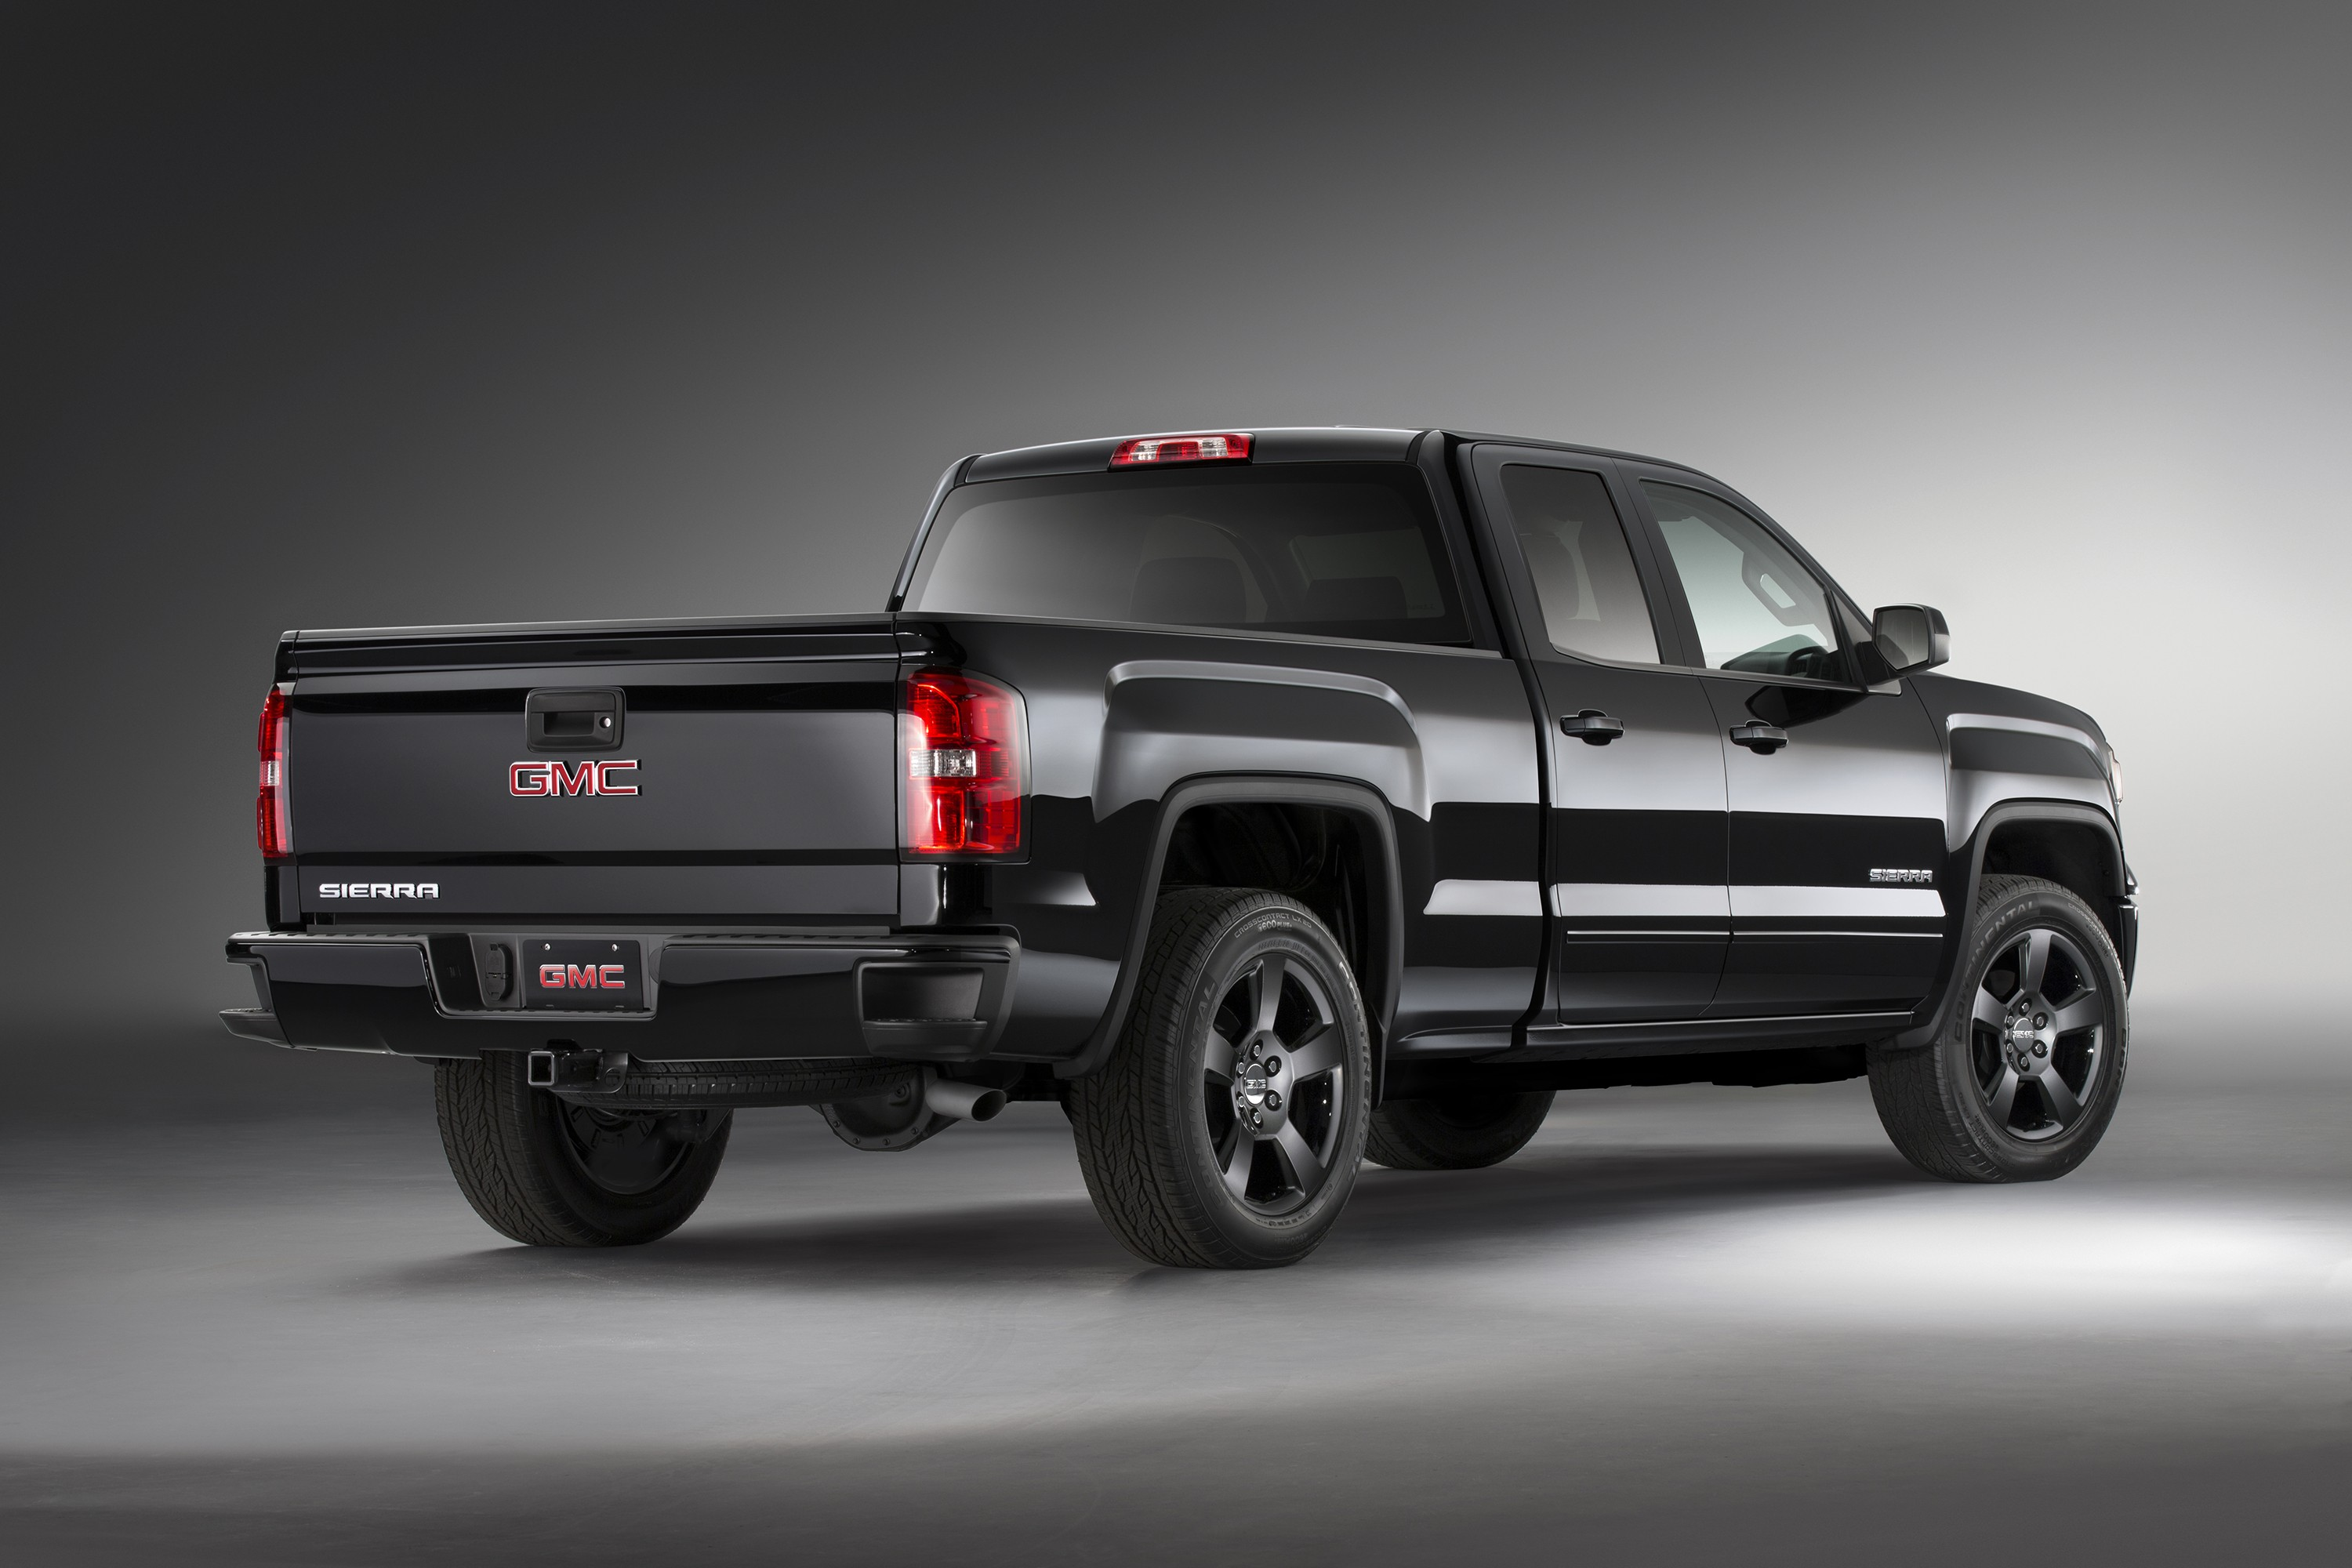 carbonedition pages gmc truck sporty looks sep news media add sierra detail carbon editions content us en substance